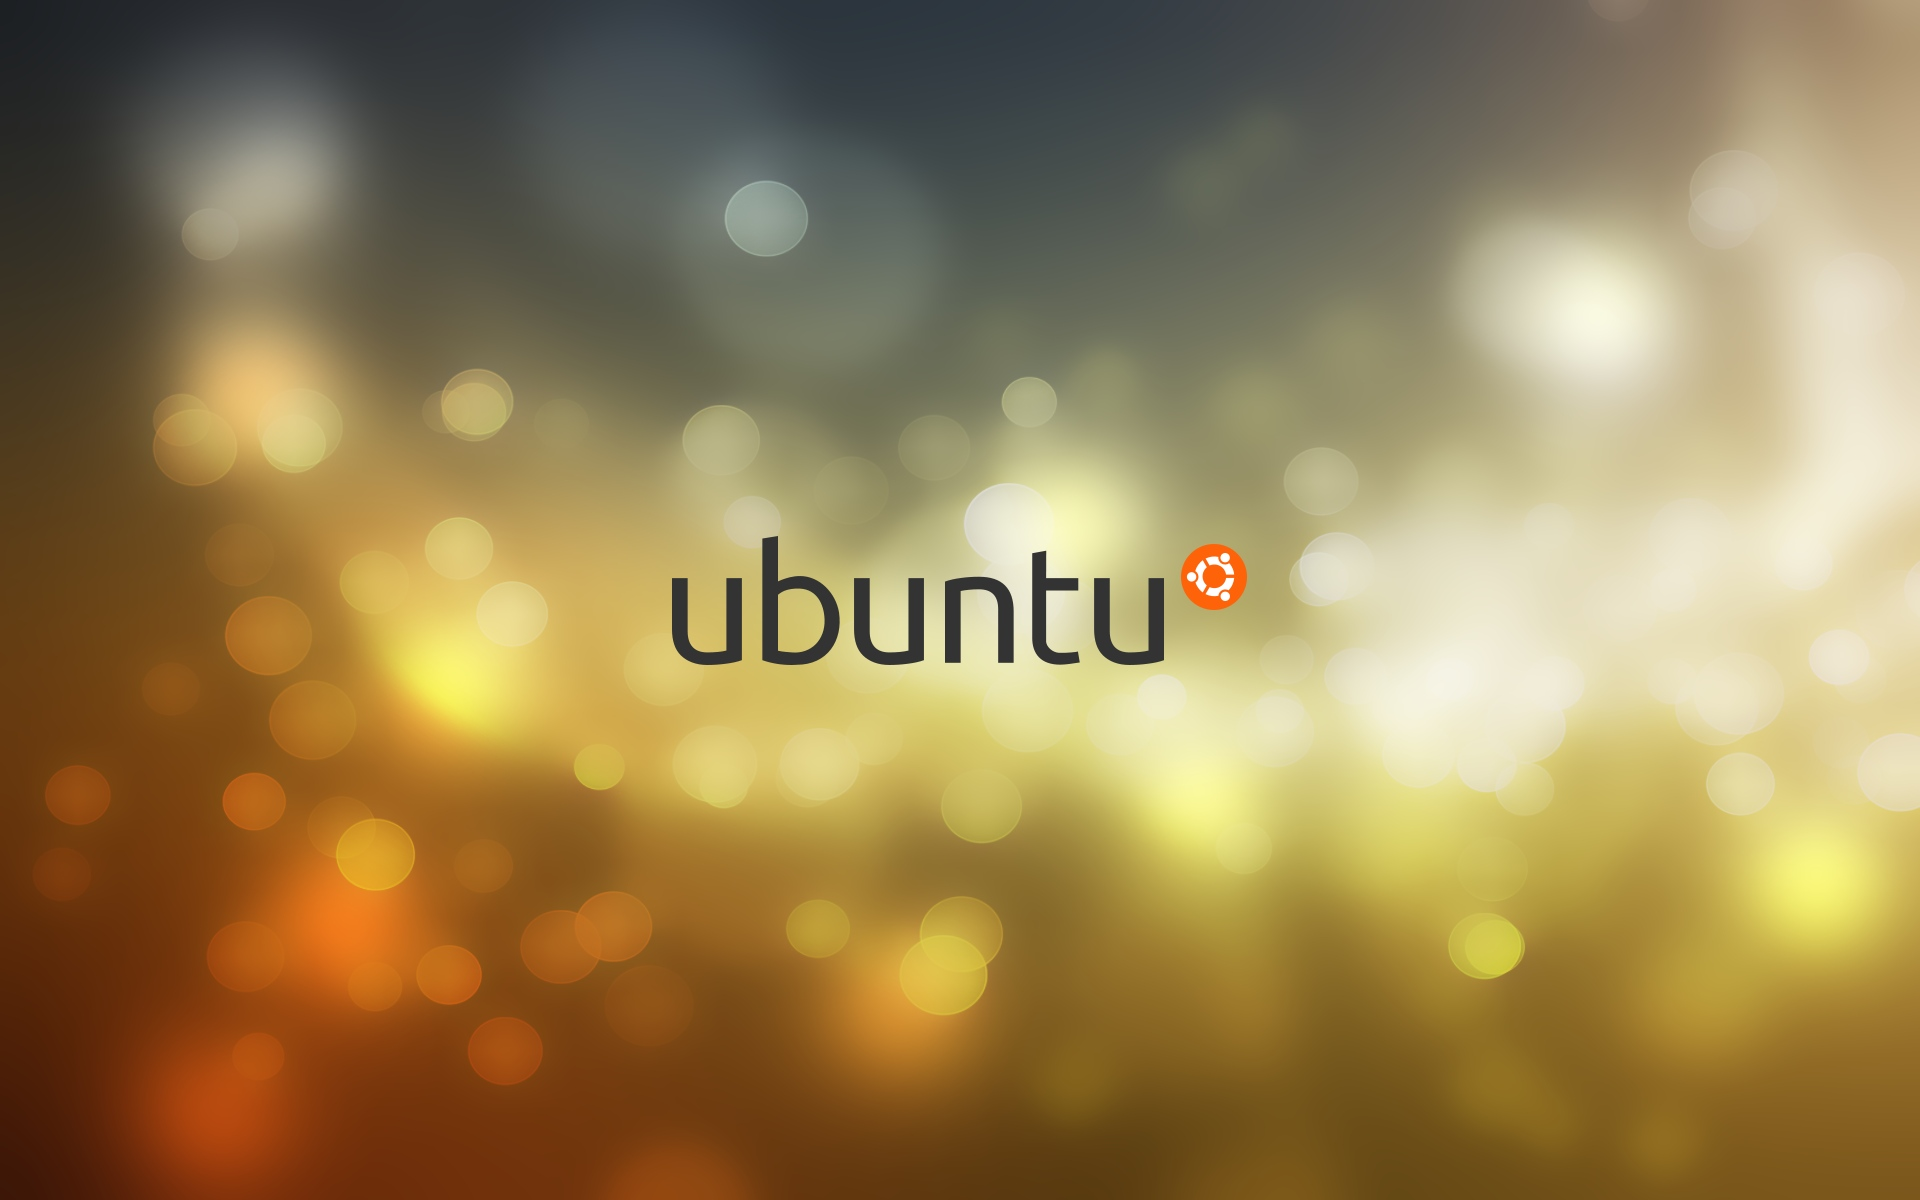 ubuntu wallpaper nice